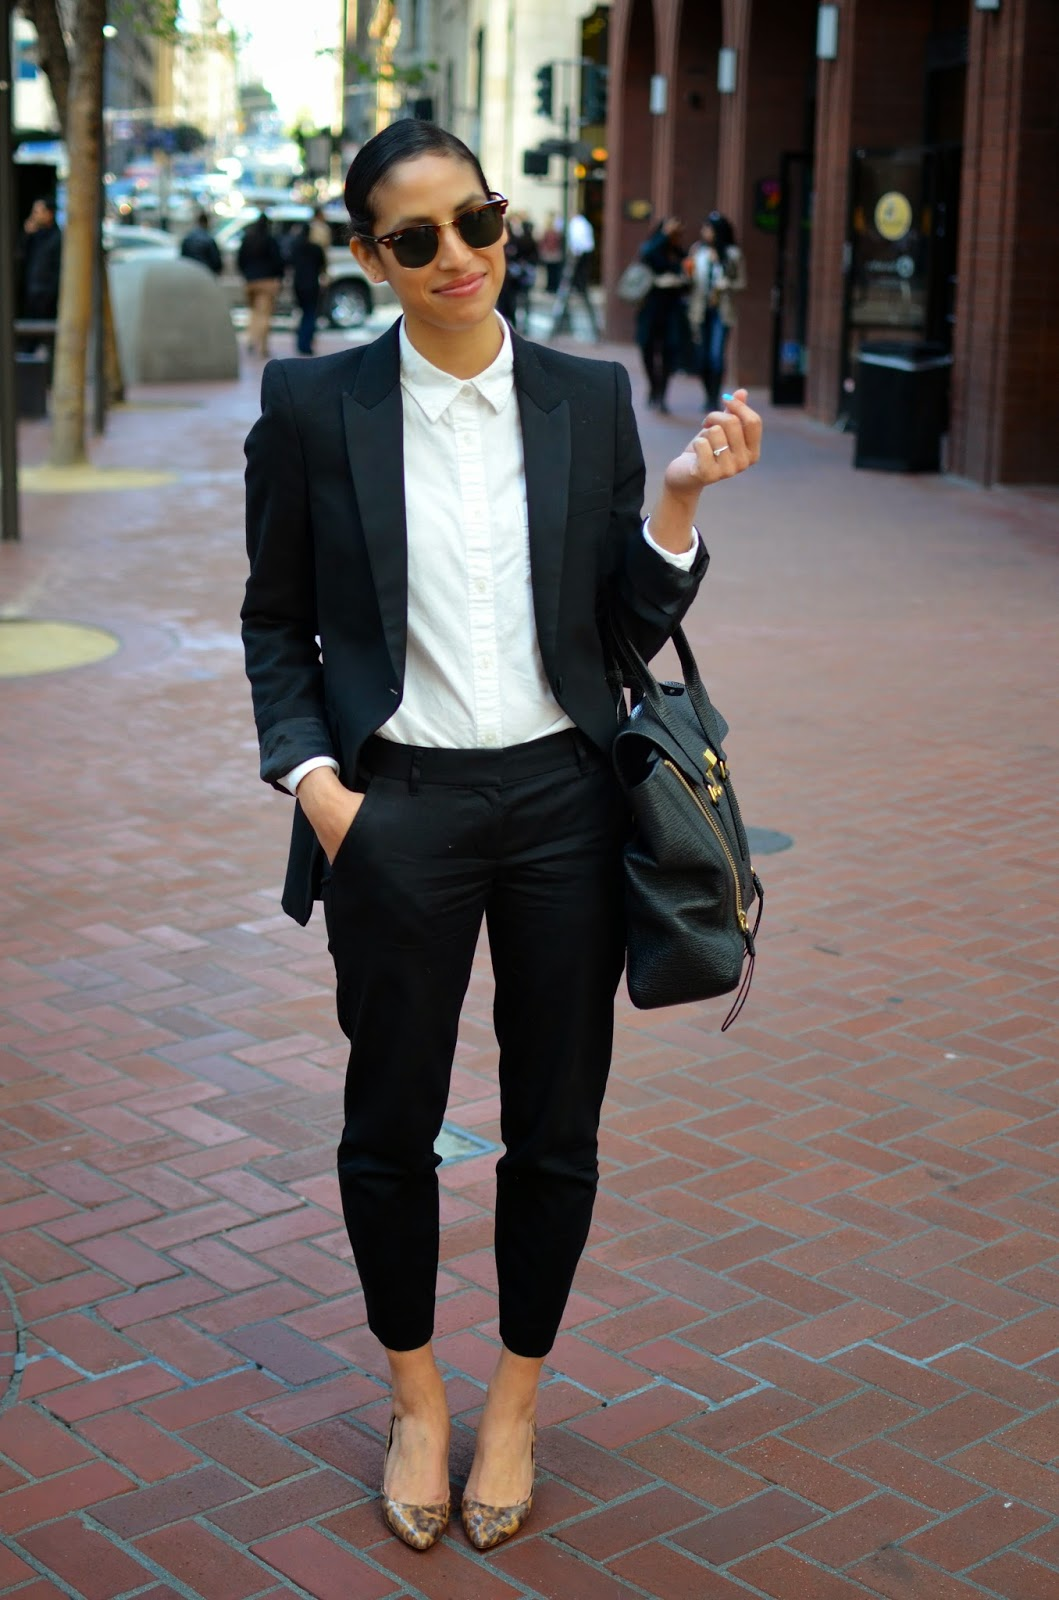 3.1 Phillip Lim Pashli satchel, J. Crew Valentina heels, J. Crew heels, J. Crew suiting, Zara suiting, women's black suit, slicked back hair